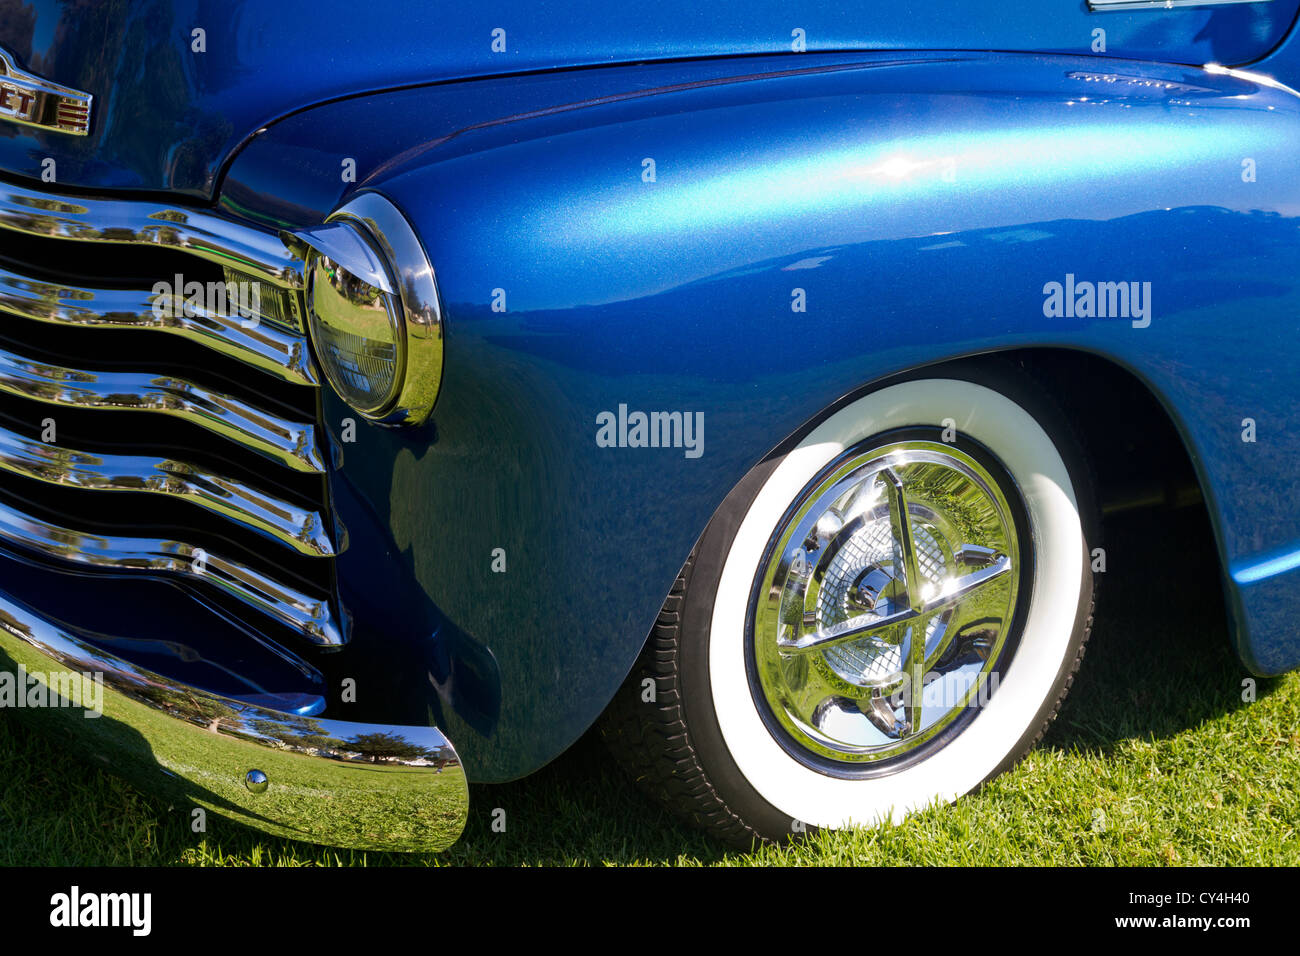 Custom Truck Stock Photos Images Alamy 1949 Chevy Panel Van 1952 Chevrolet Shown At Car Show In Goleta California Image